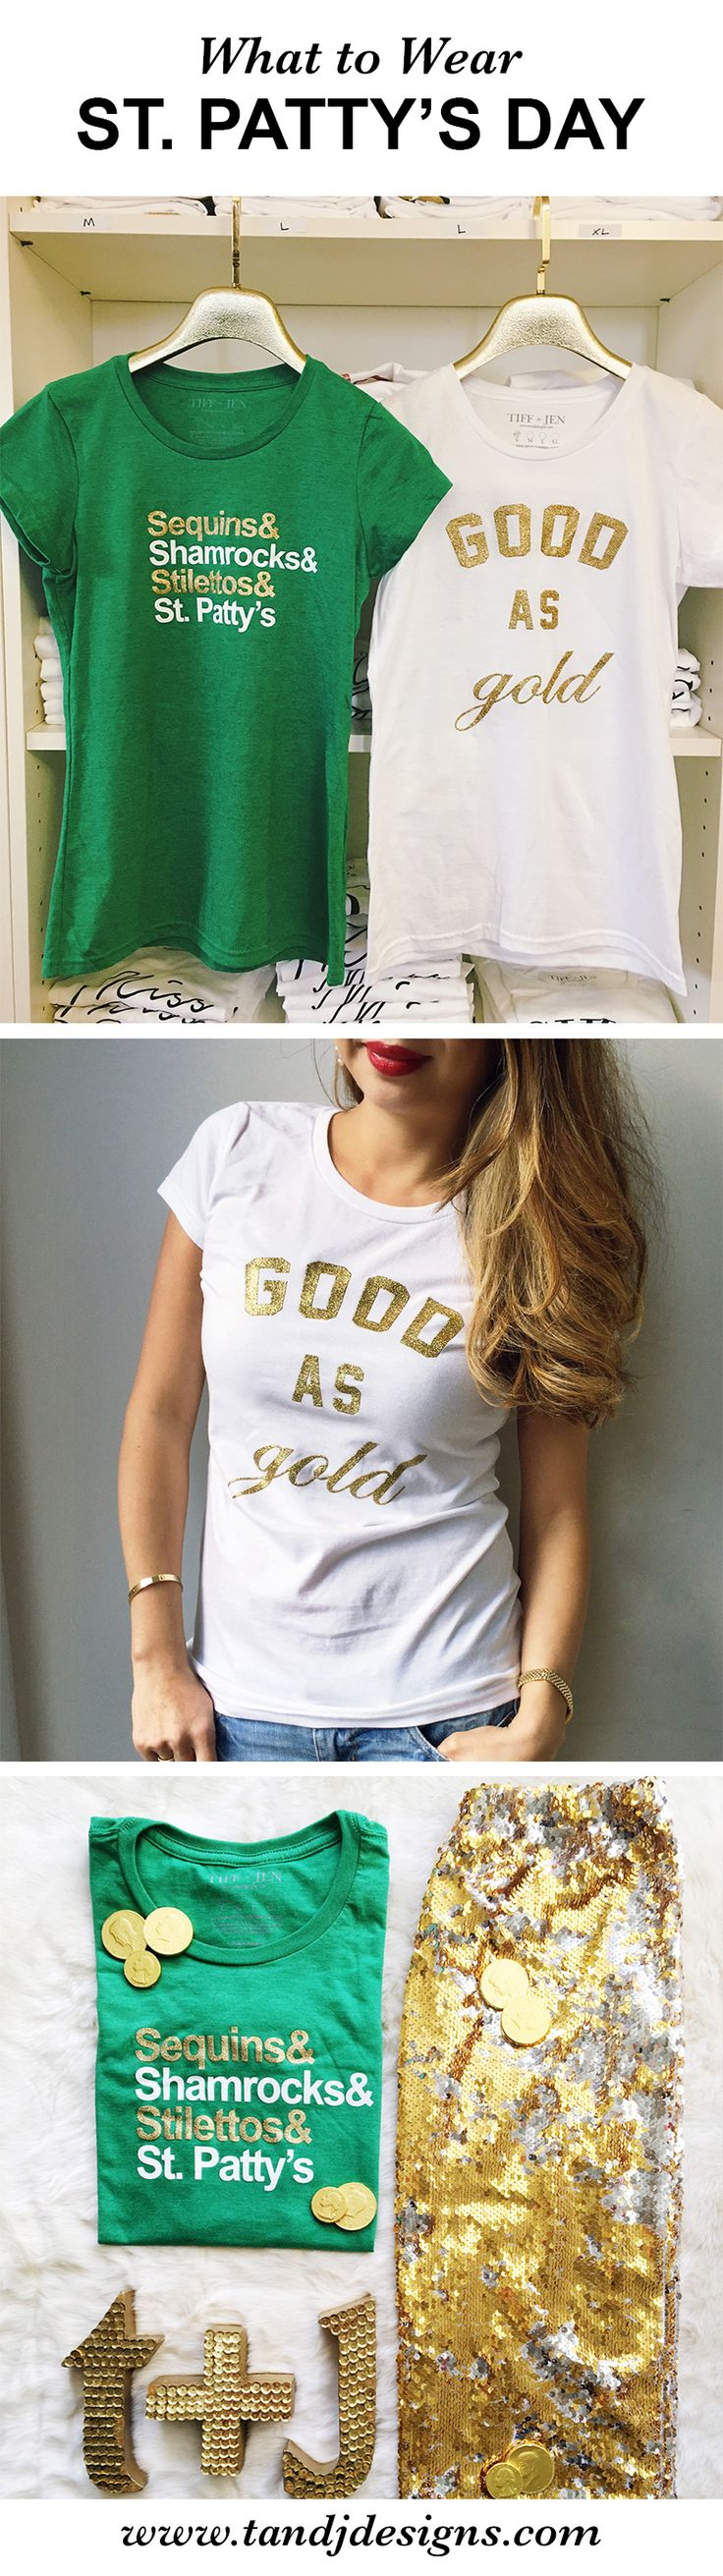 What to Wear on St. Patty's Day! Cute St Patty's Day t-shirts - perfect paired with denim or a gold sequin skirt for a festive and cute look